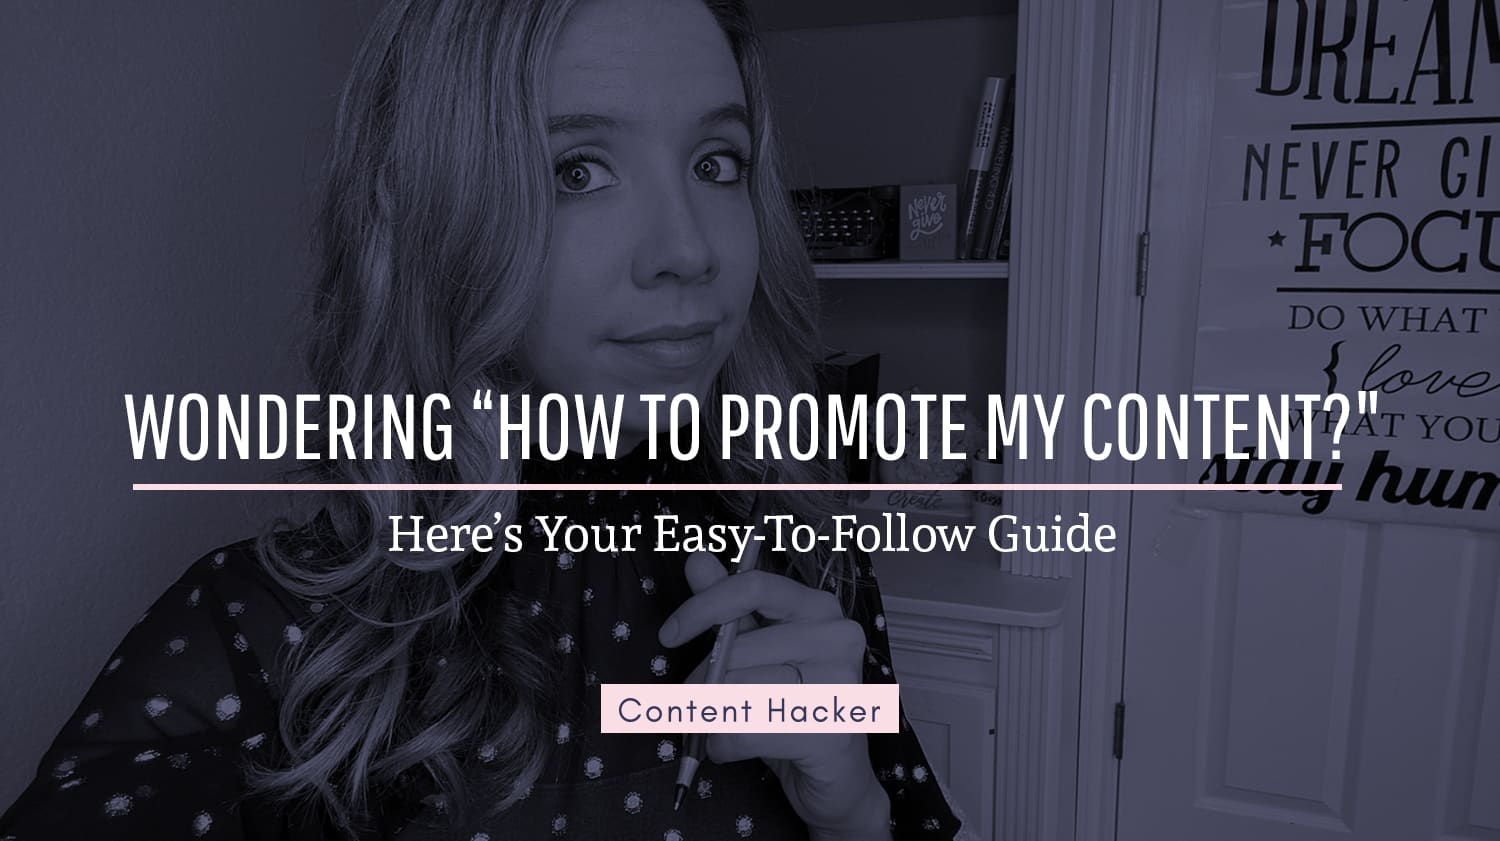 Learn how to promote your content